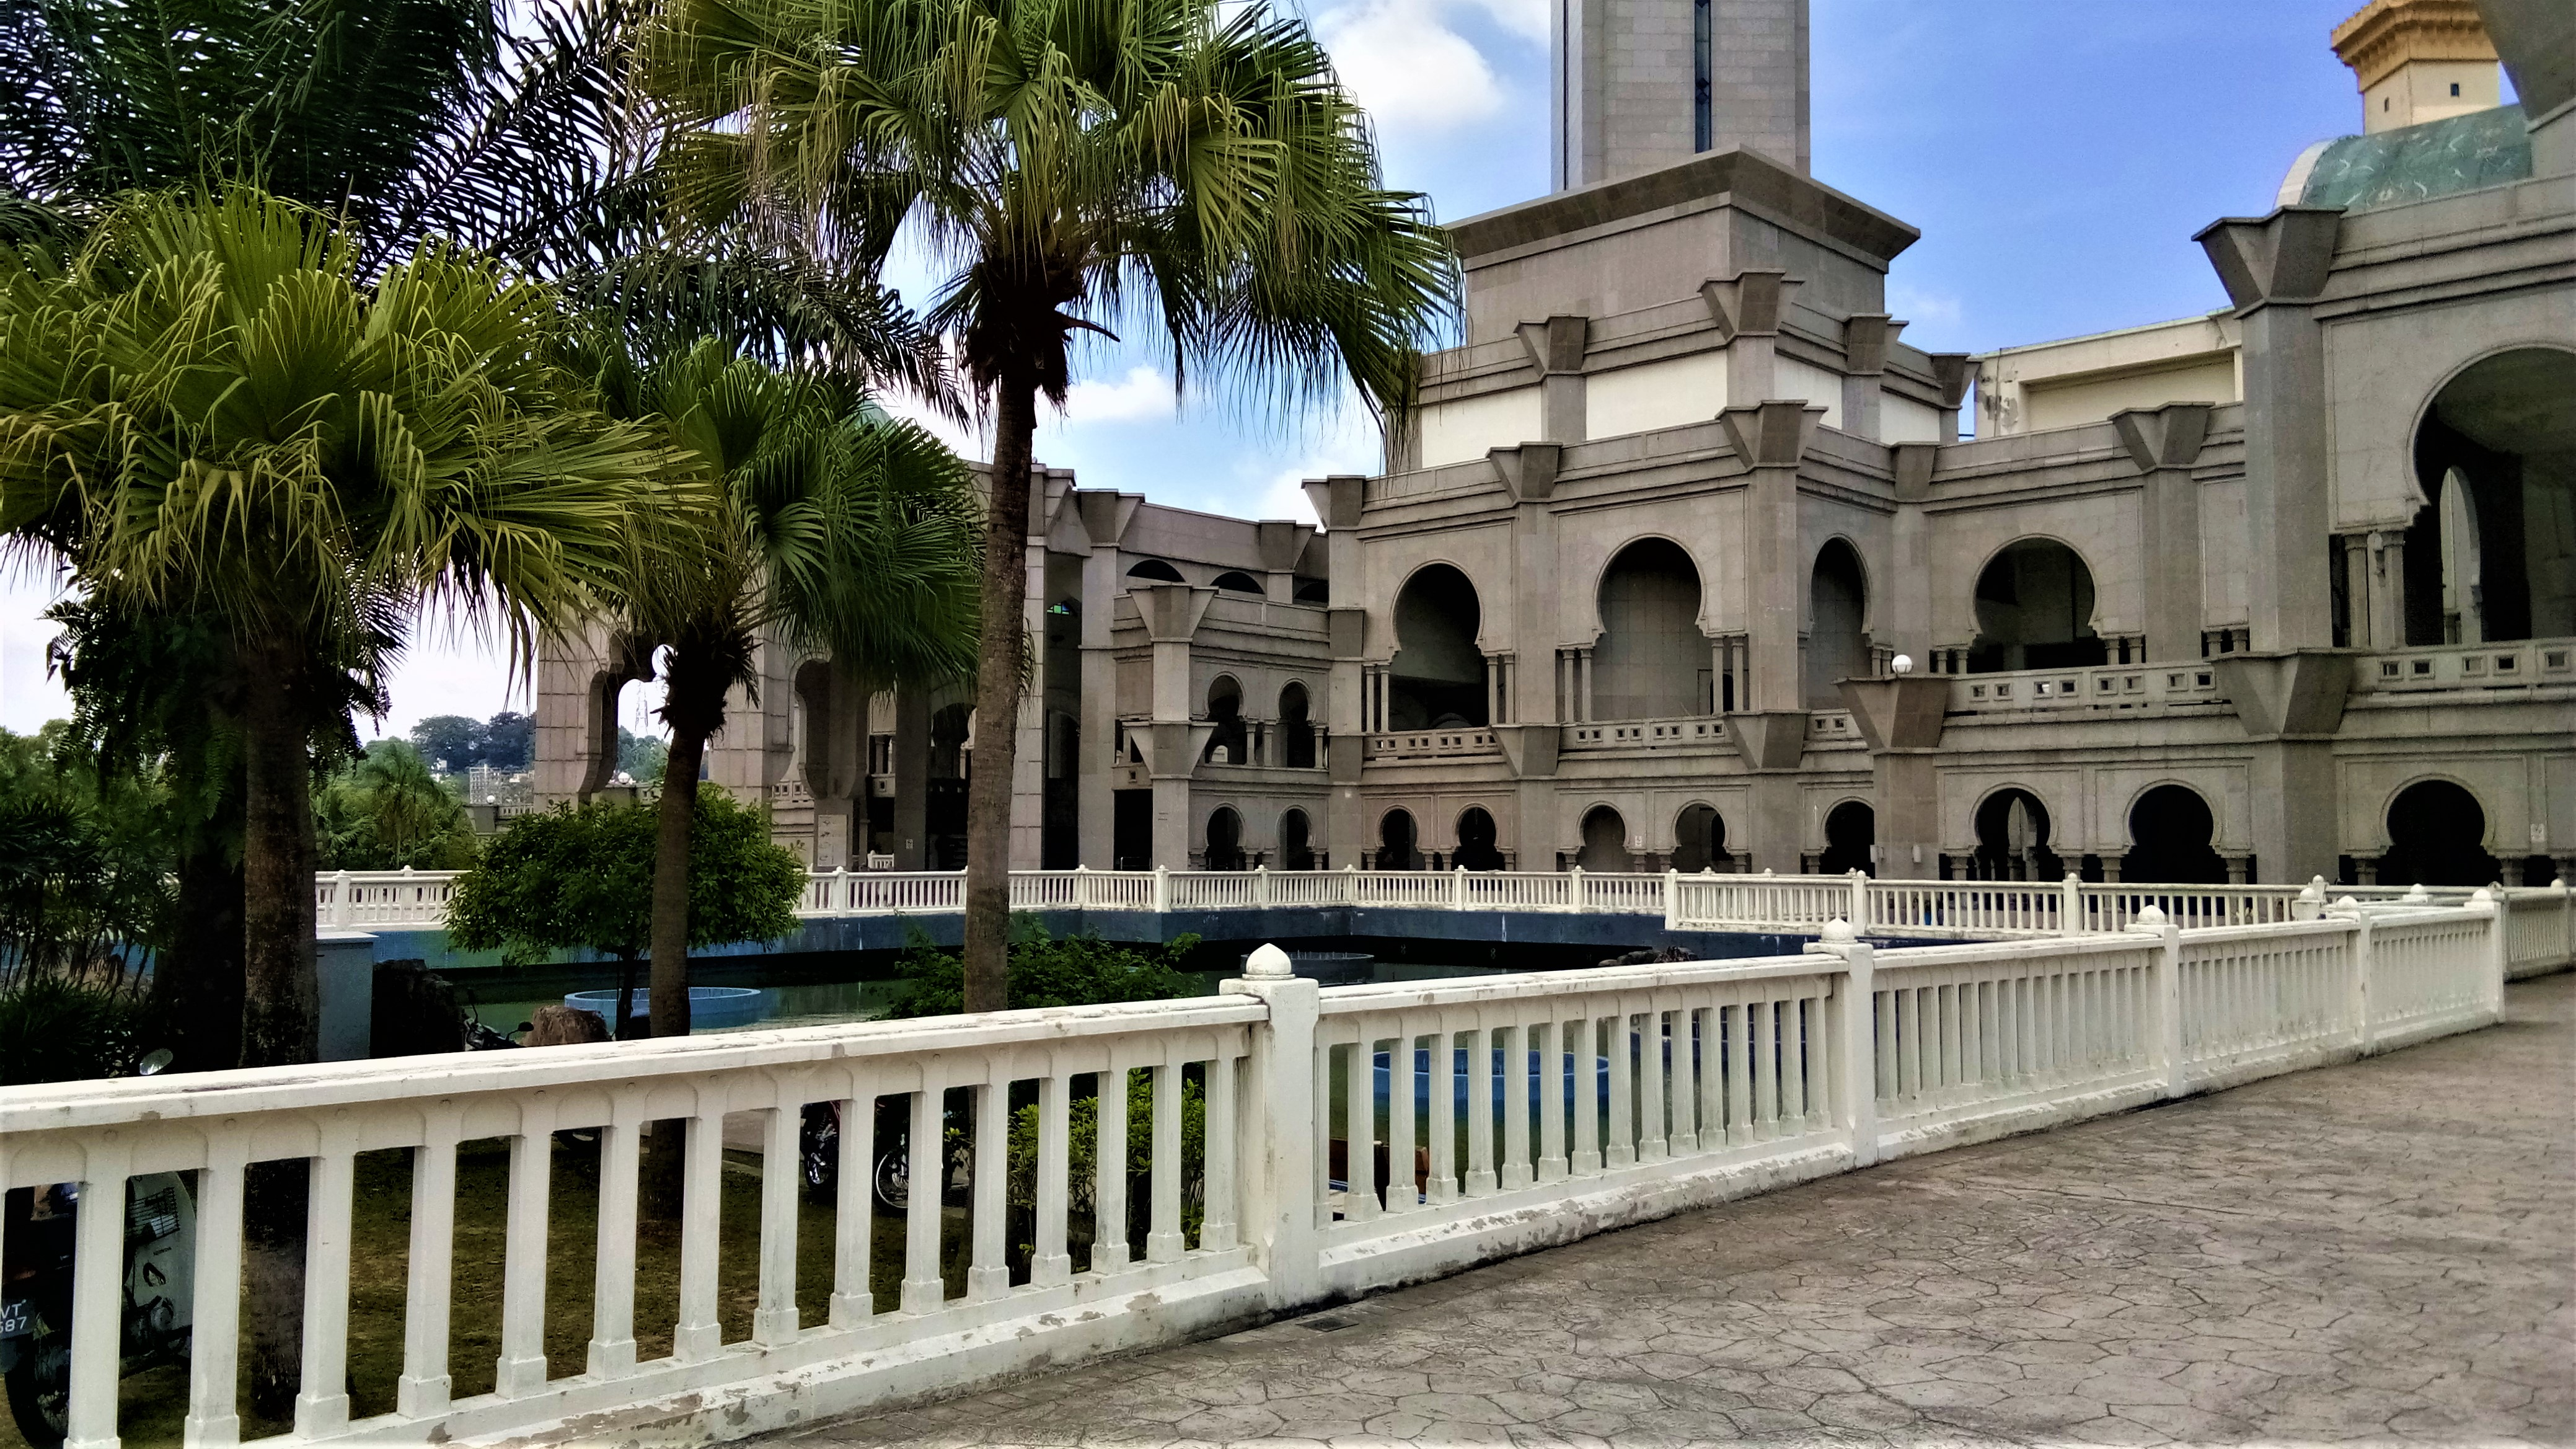 A Mosque's Courtyard : Wilayah Persekutuan Mosque